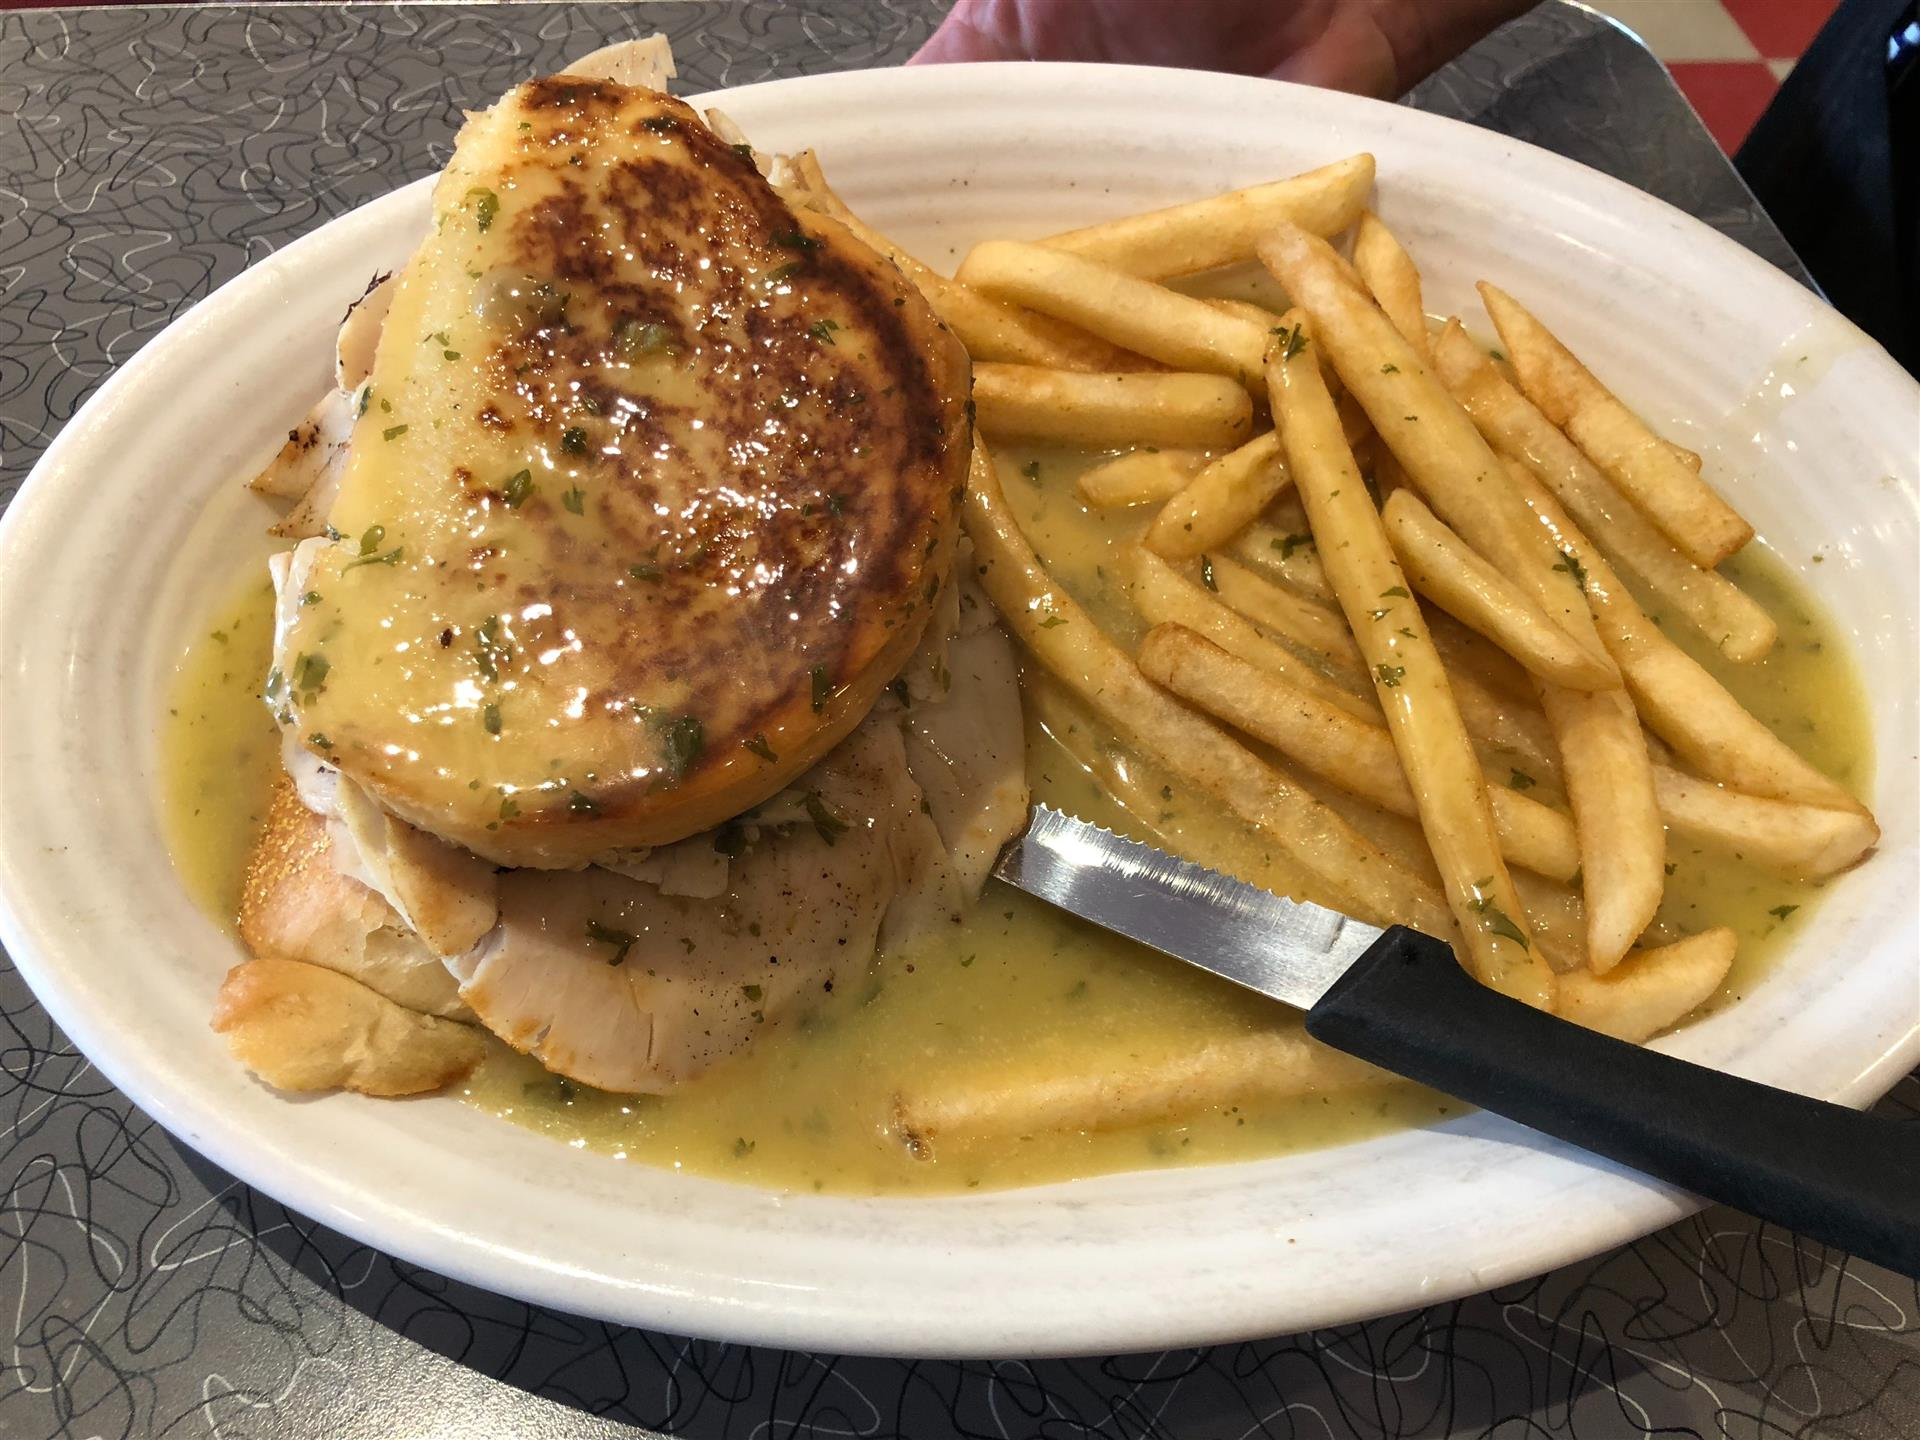 chicken sandwich on a plate with a side of fries covered in gravy